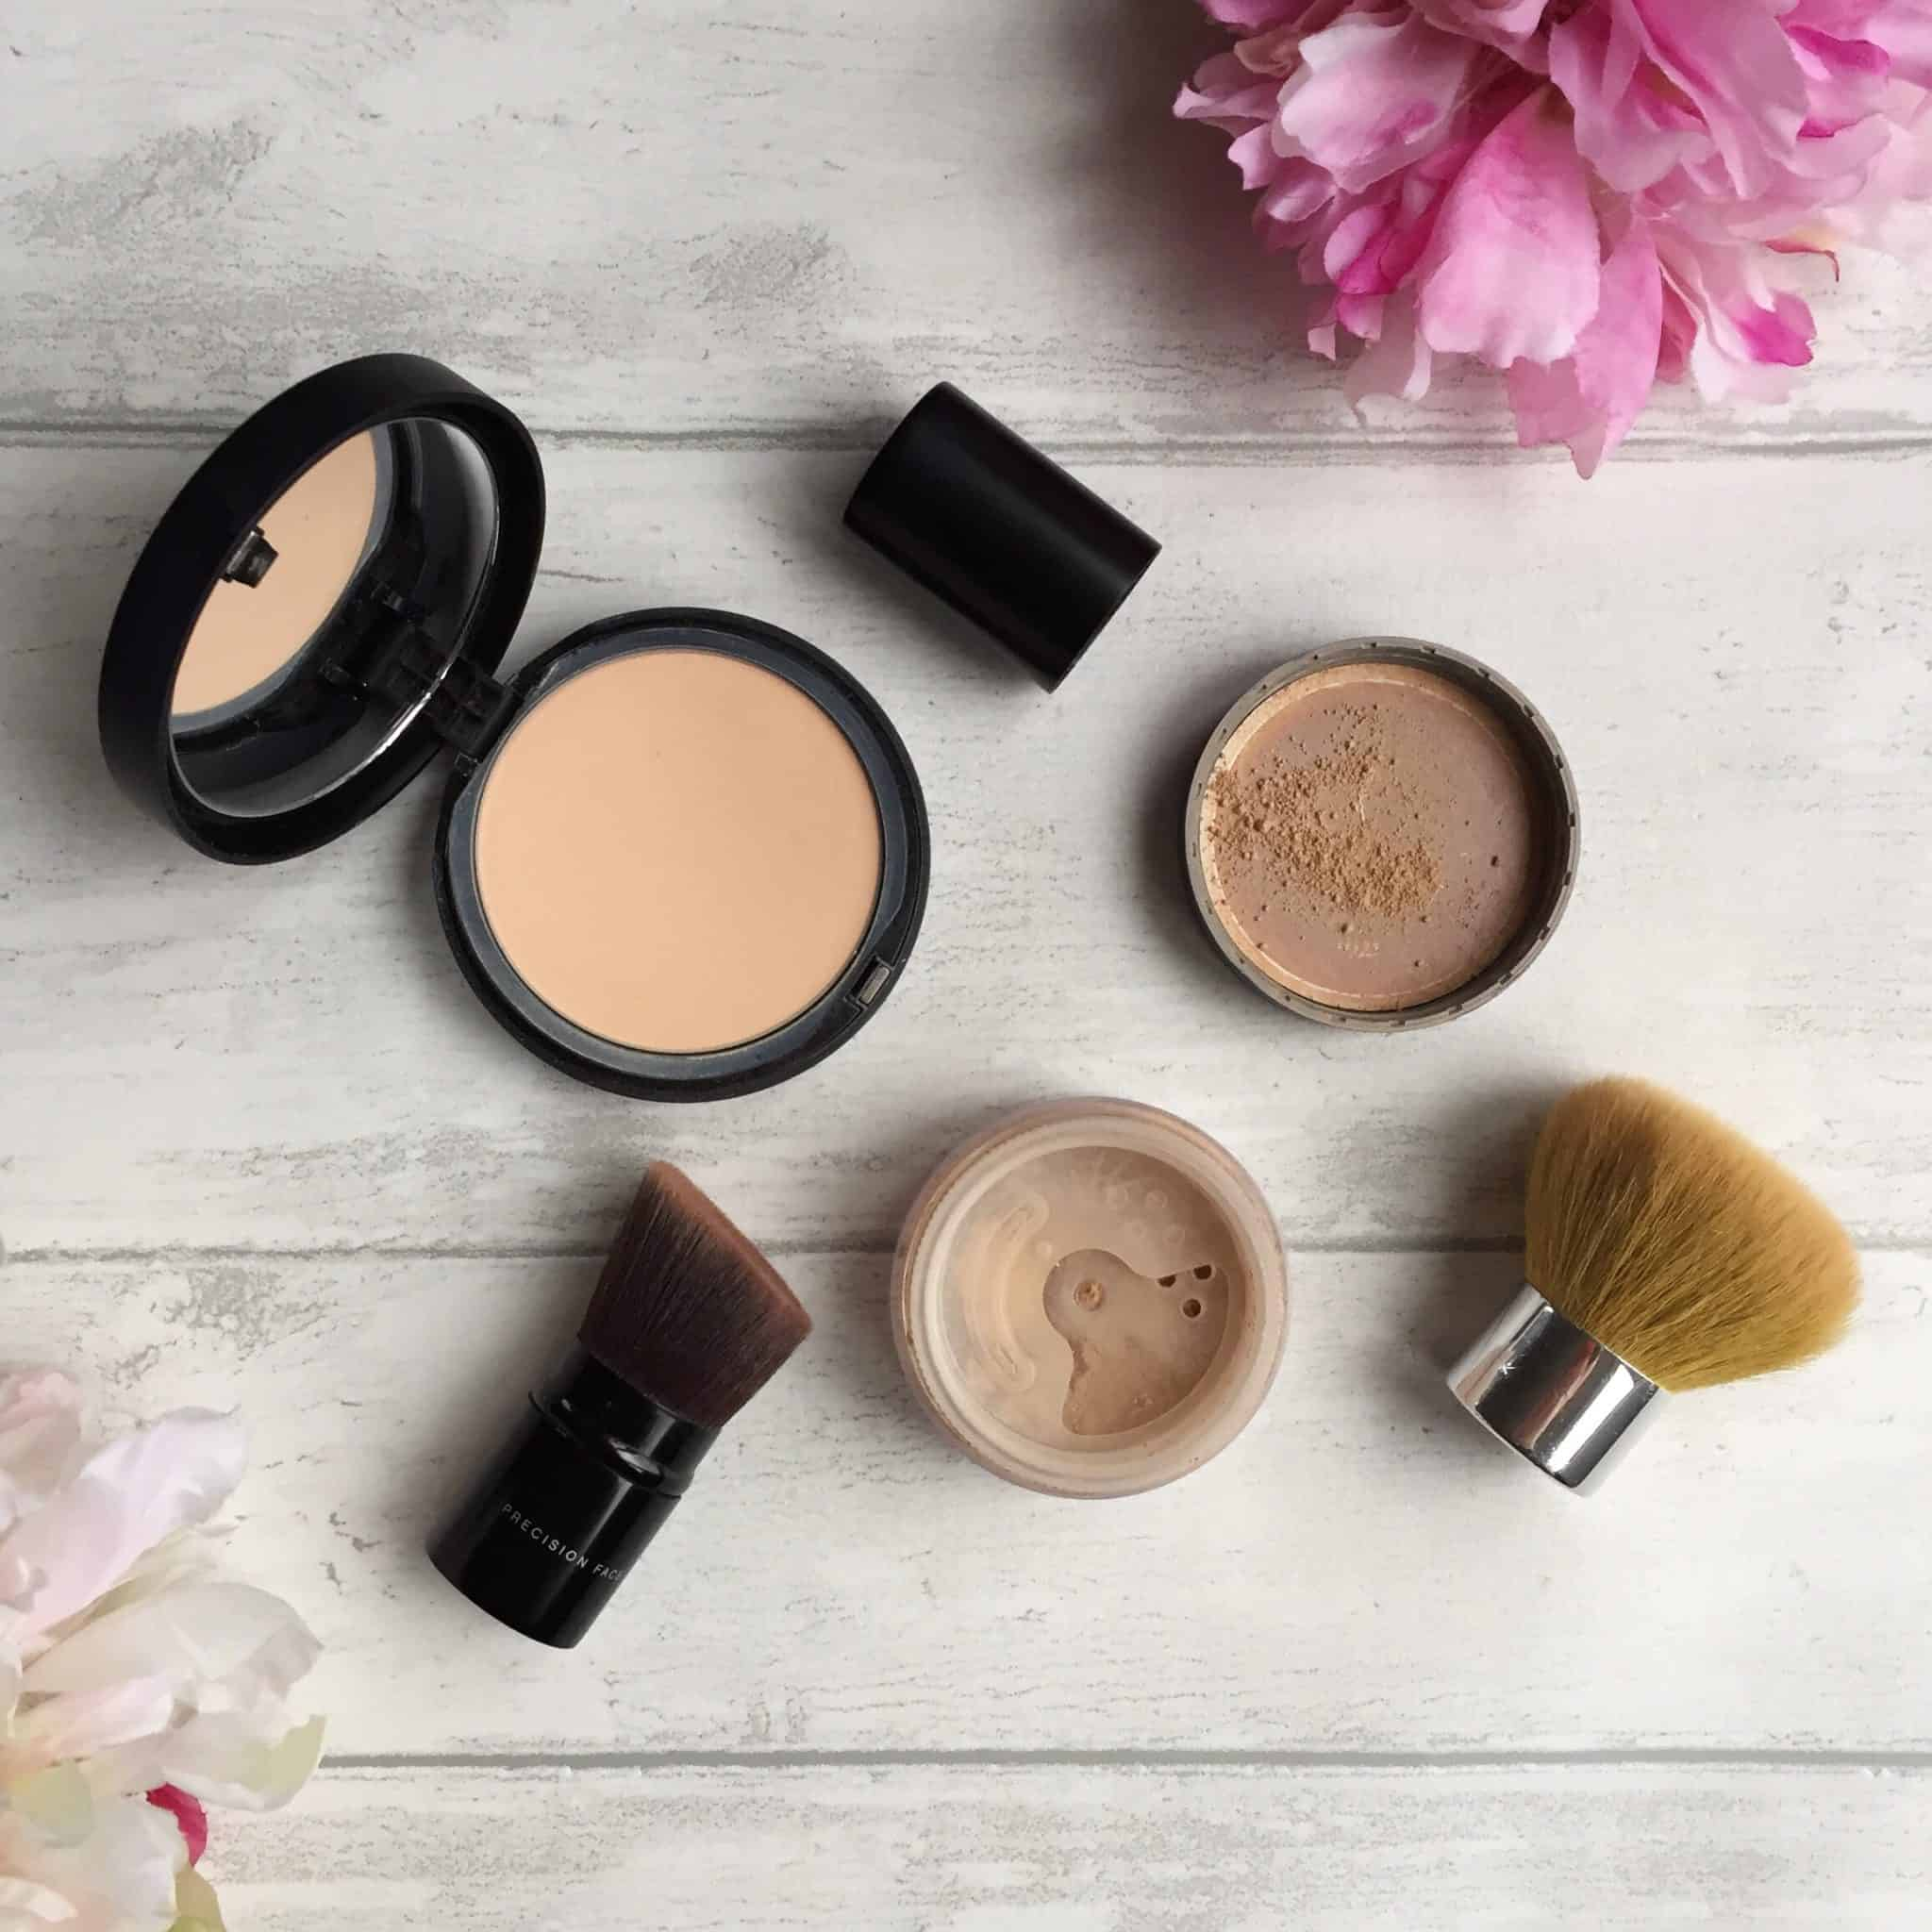 bareminerals mineral foundation original vs bare pro. Black Bedroom Furniture Sets. Home Design Ideas